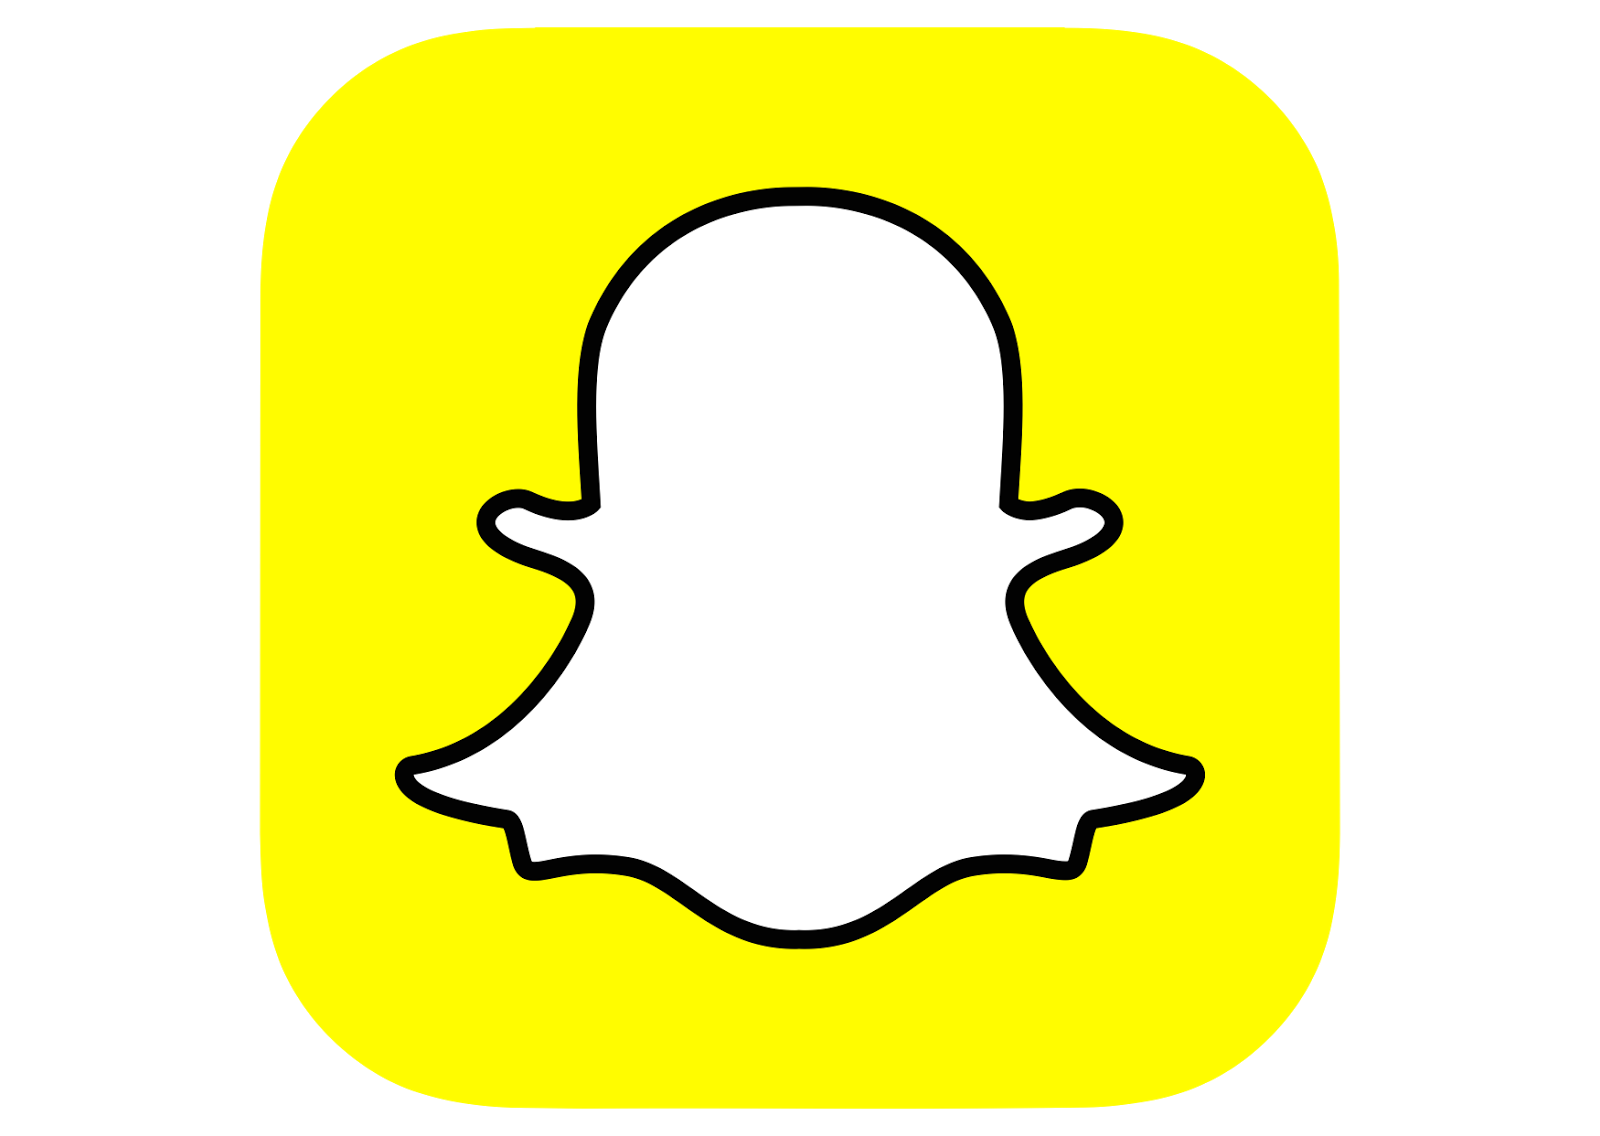 Free Snapchat Cliparts, Download Free Clip Art, Free Clip.